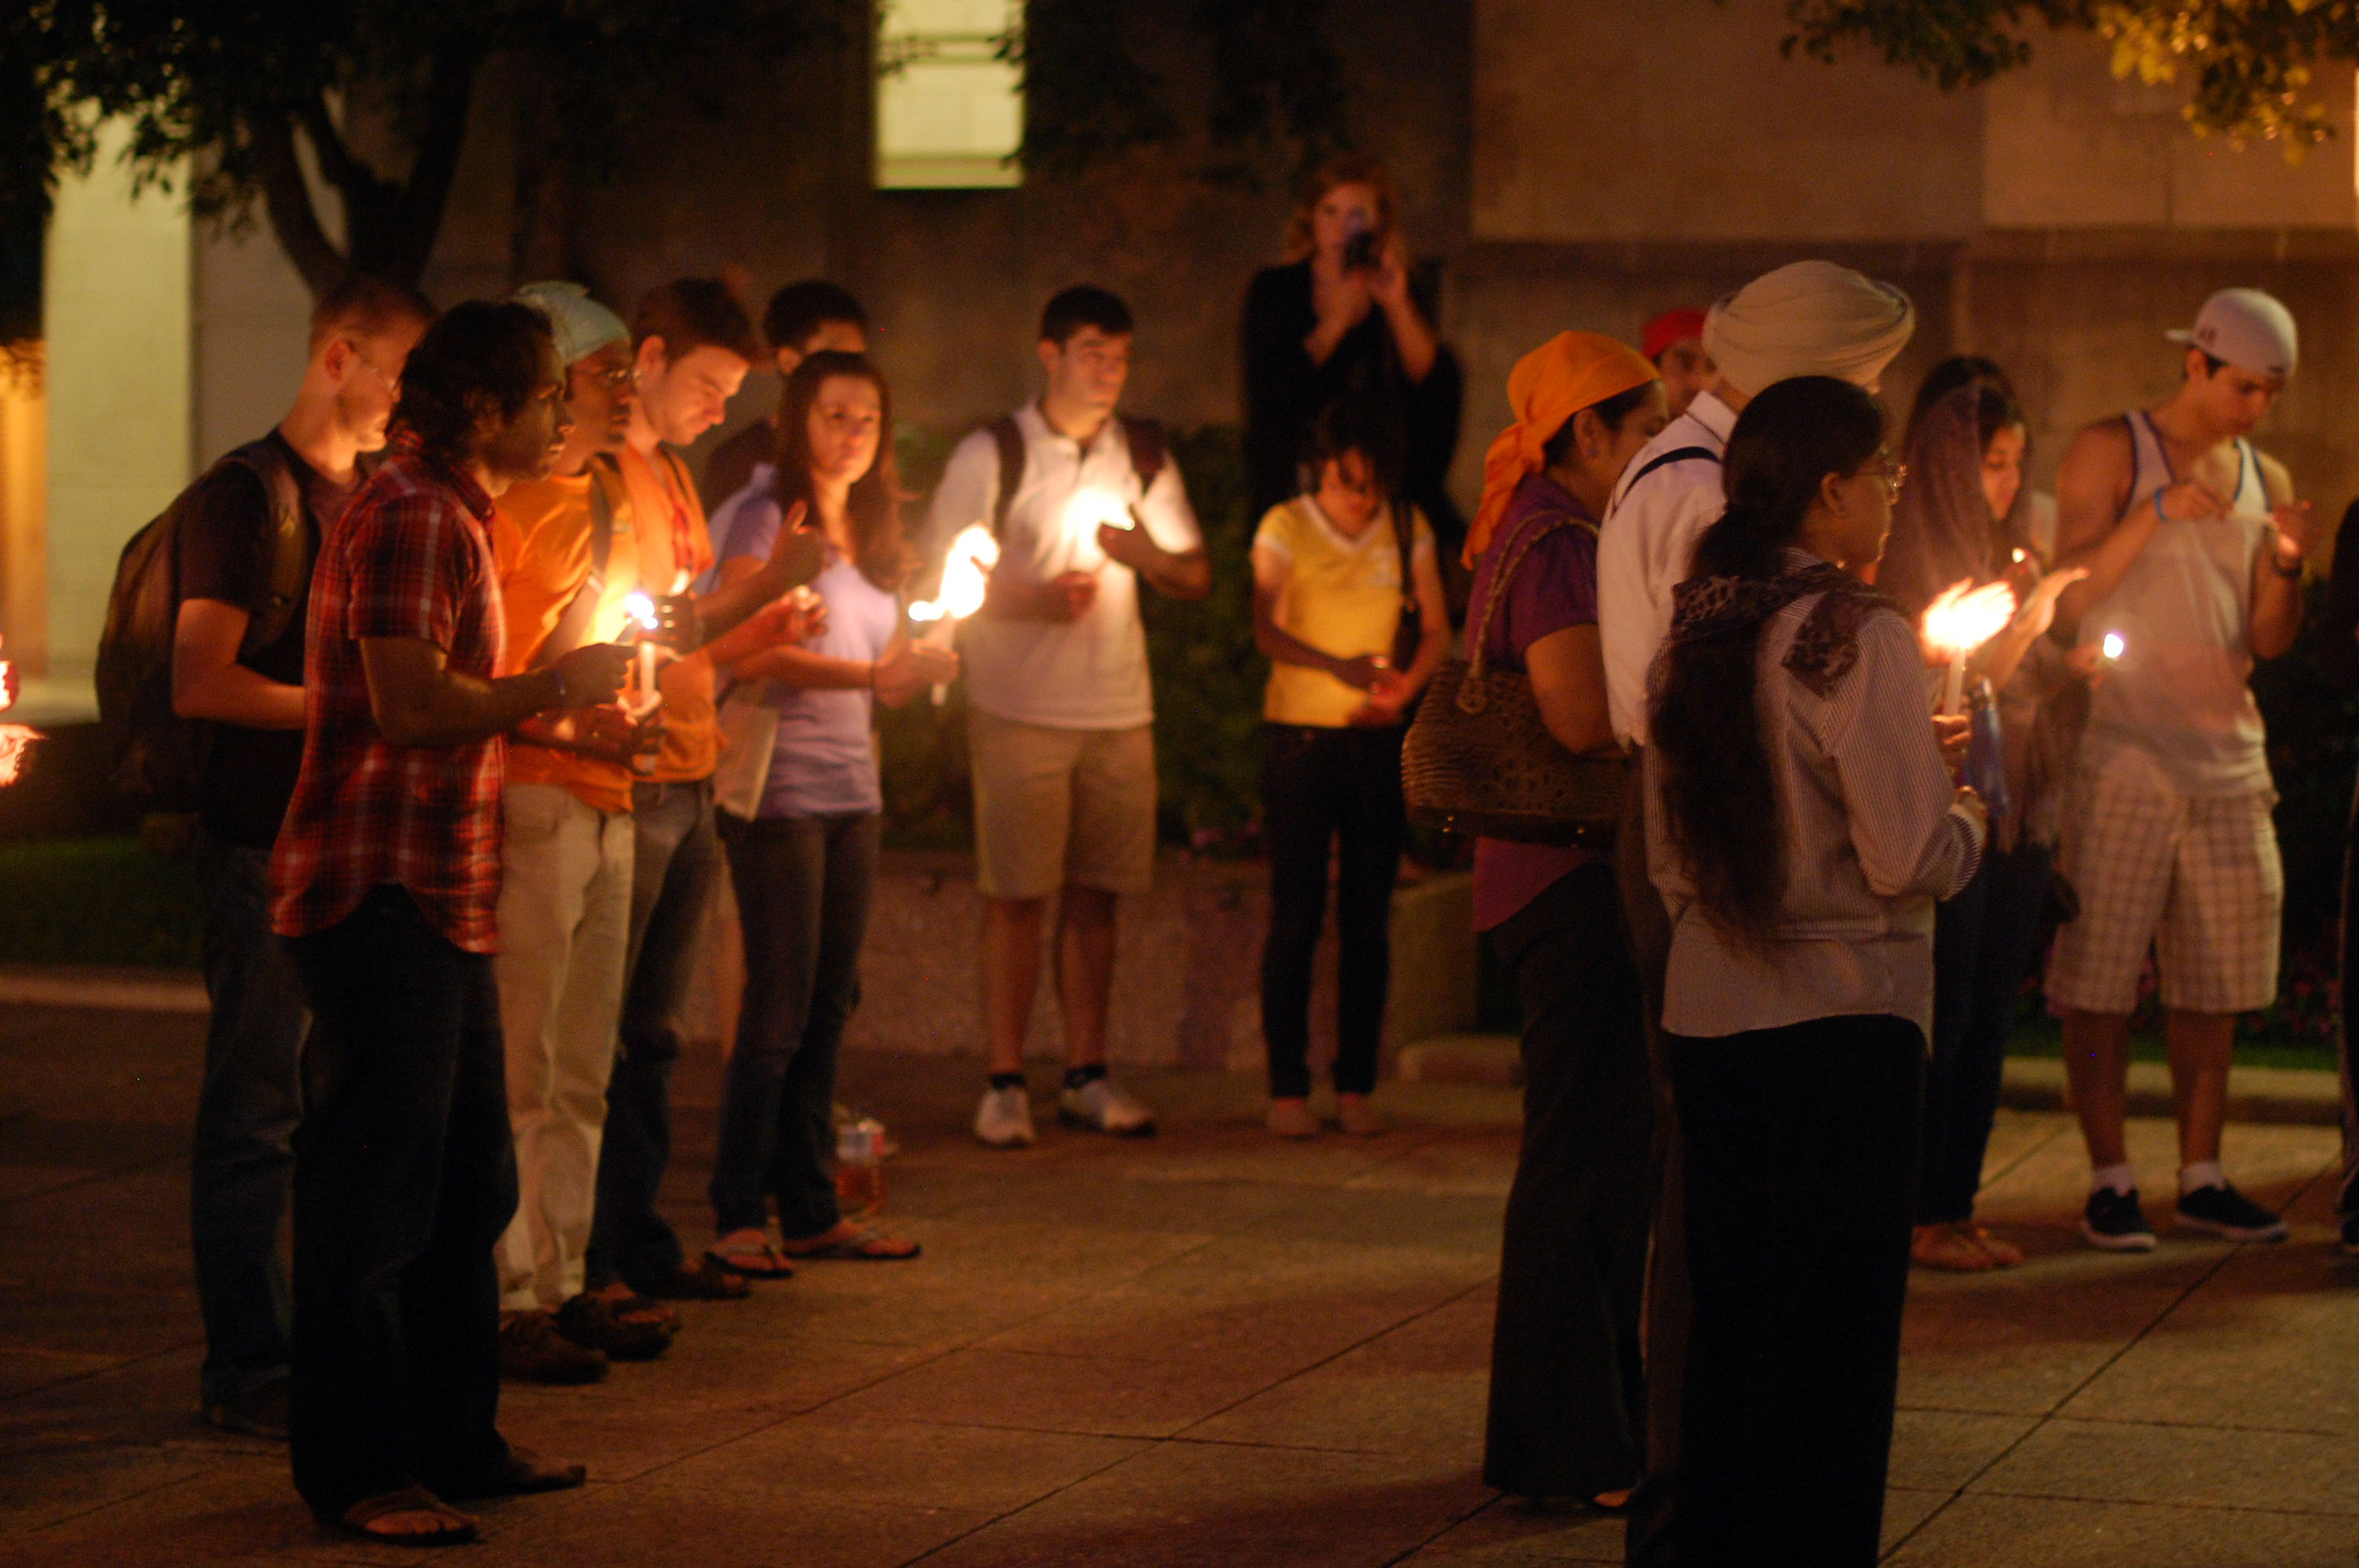 Members of the community gathered outside of Marsh Chapel to light candles in remembrance